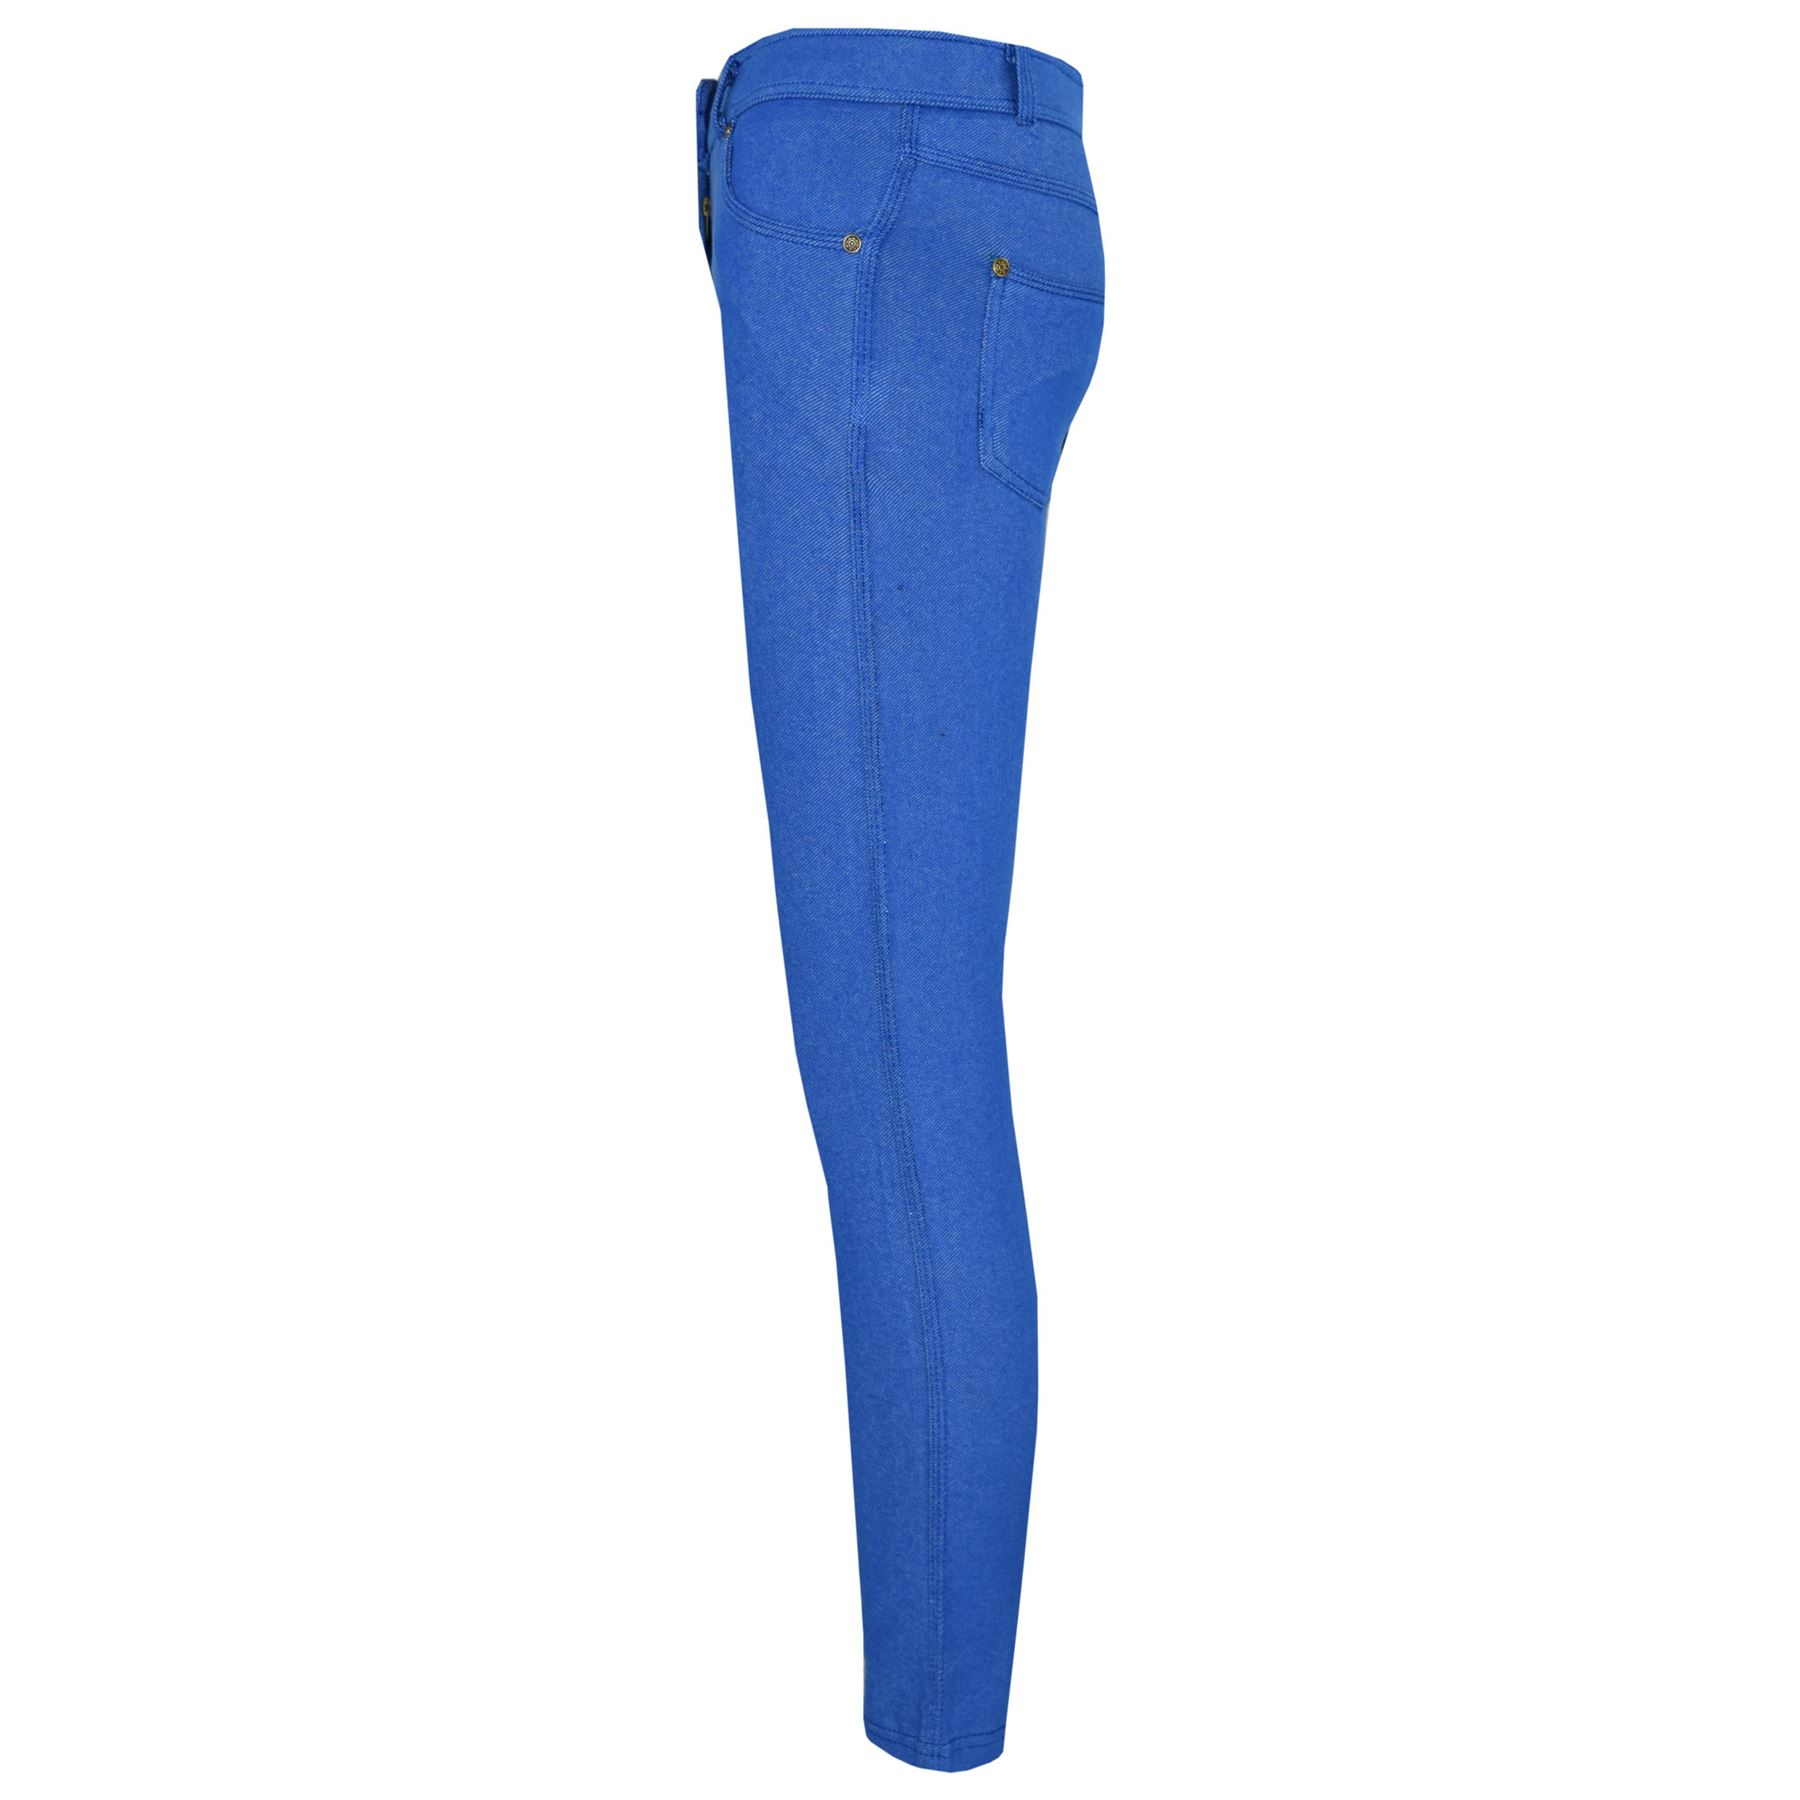 Girls-Skinny-Jeans-Kids-Denim-Stretchy-Jeggings-Pants-Coloured-Trousers-5-13-Yr